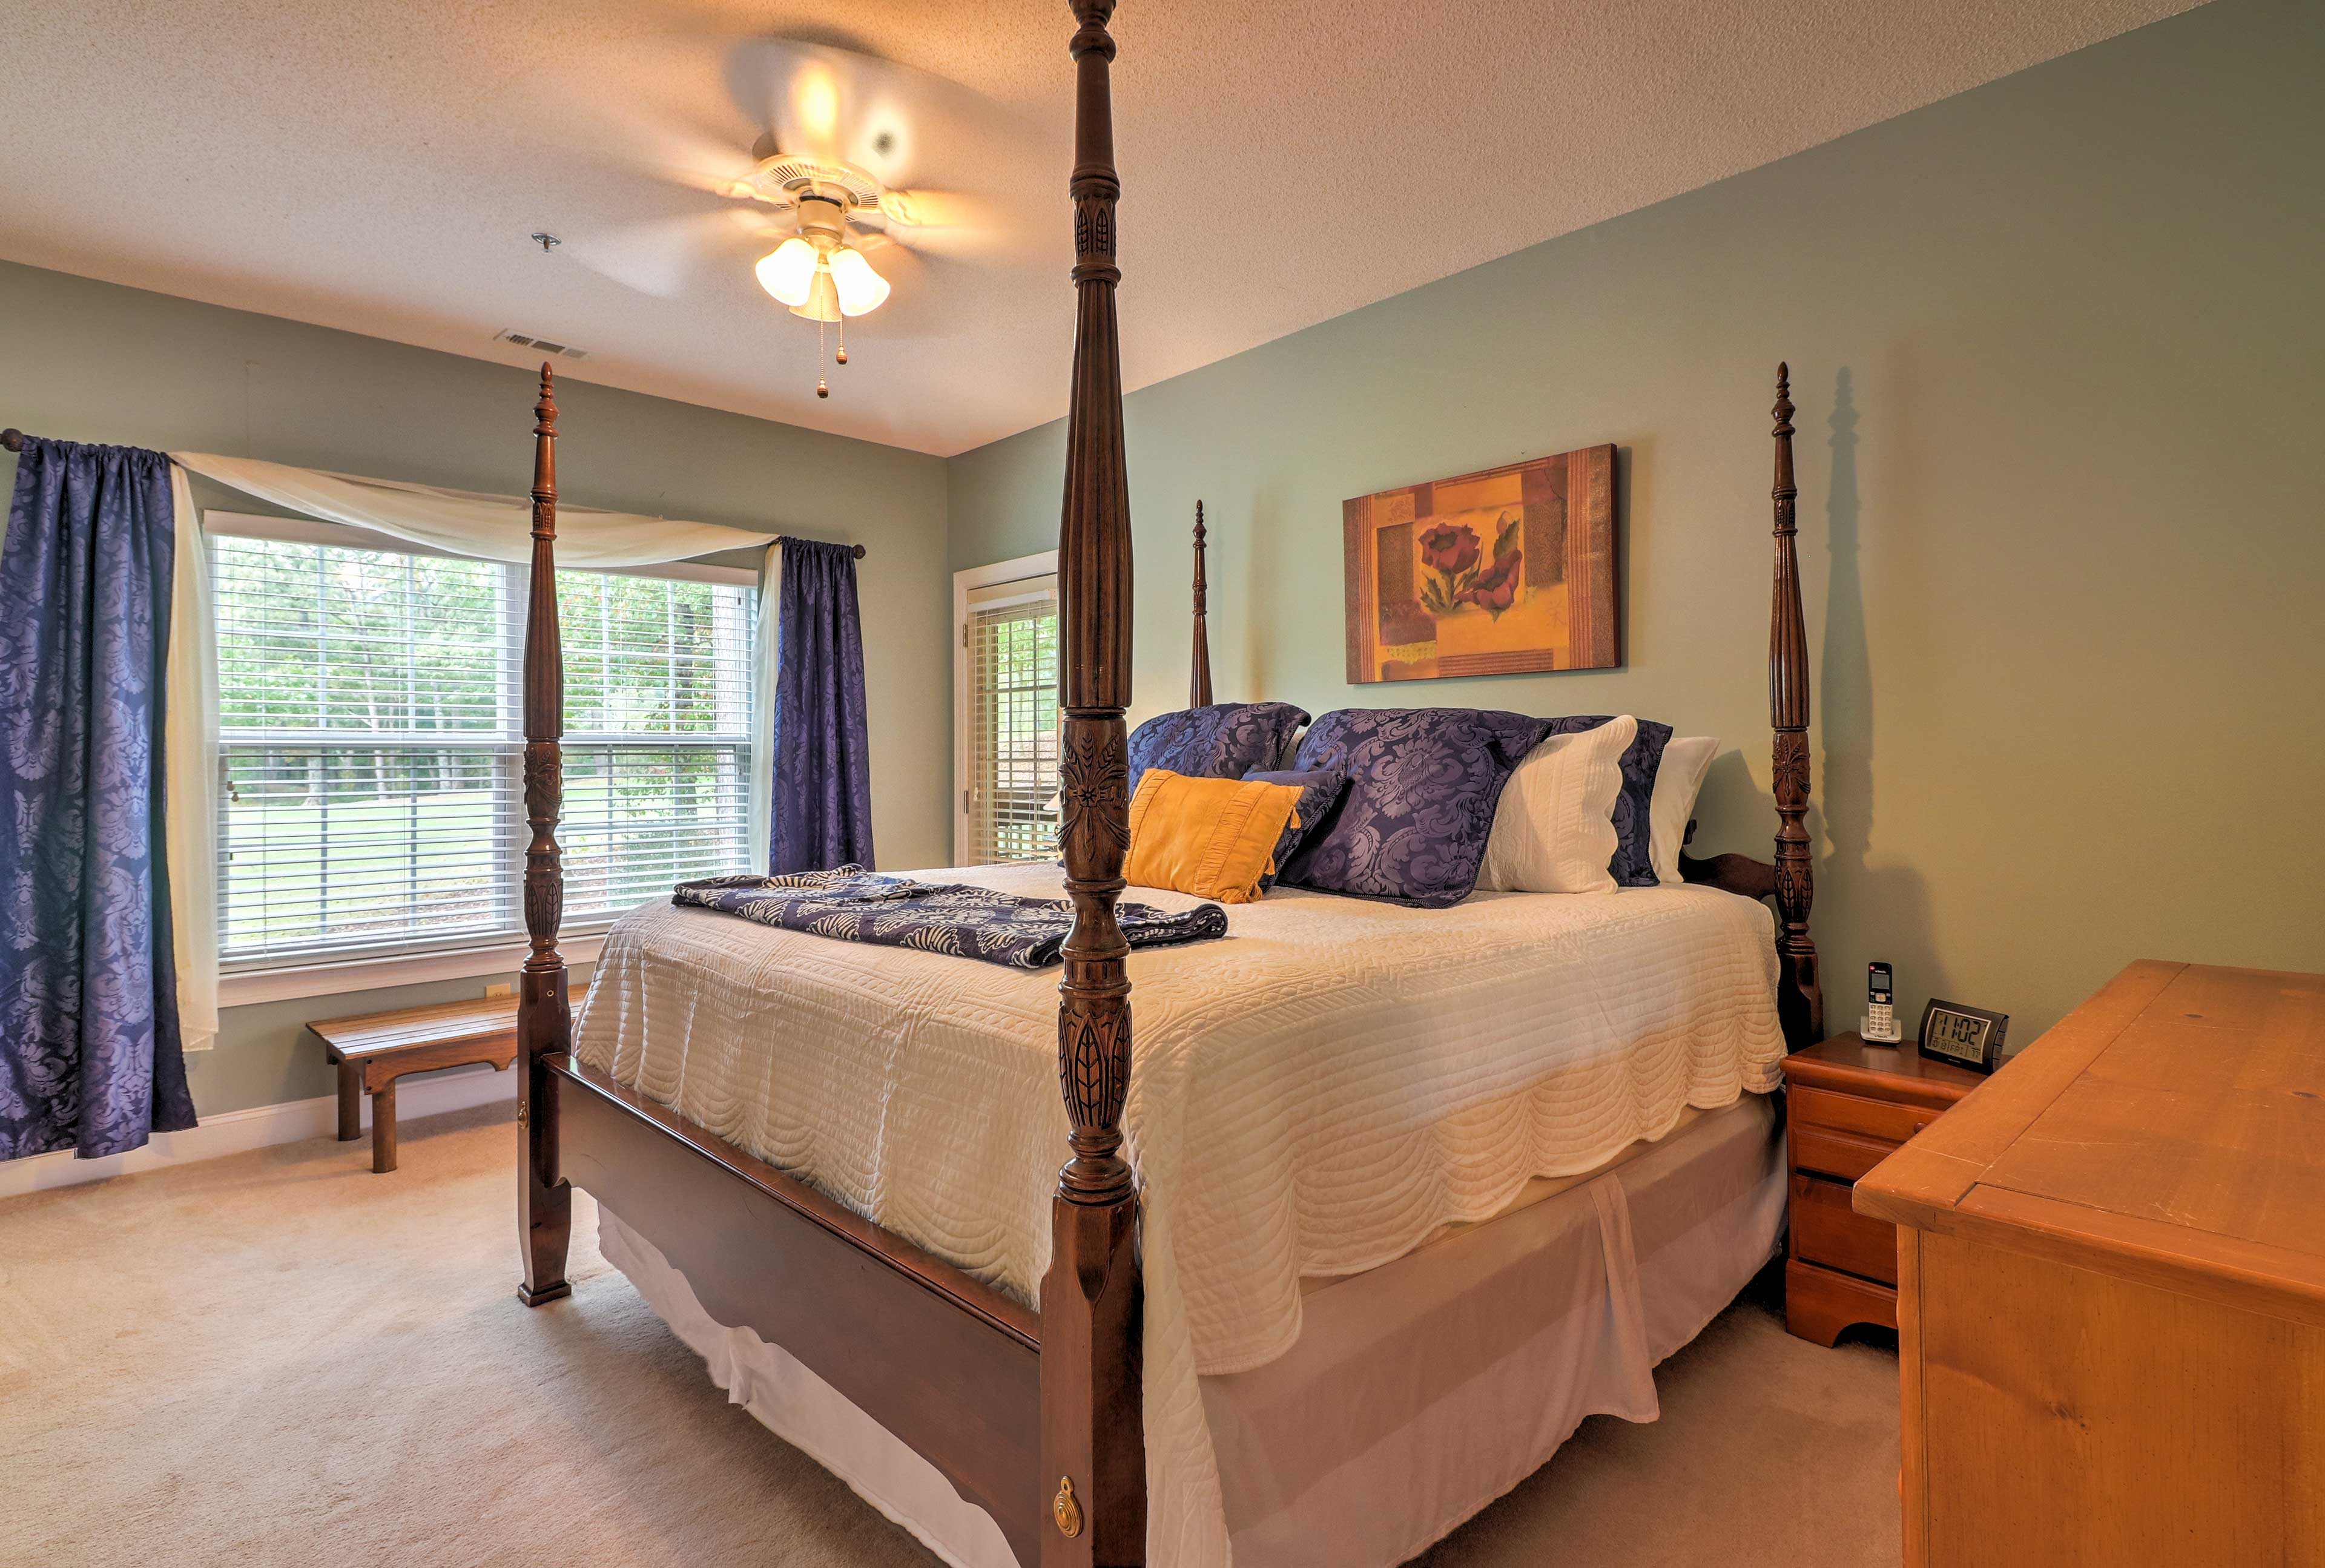 Climb under the covers of the king-sized bed in the master bedroom.